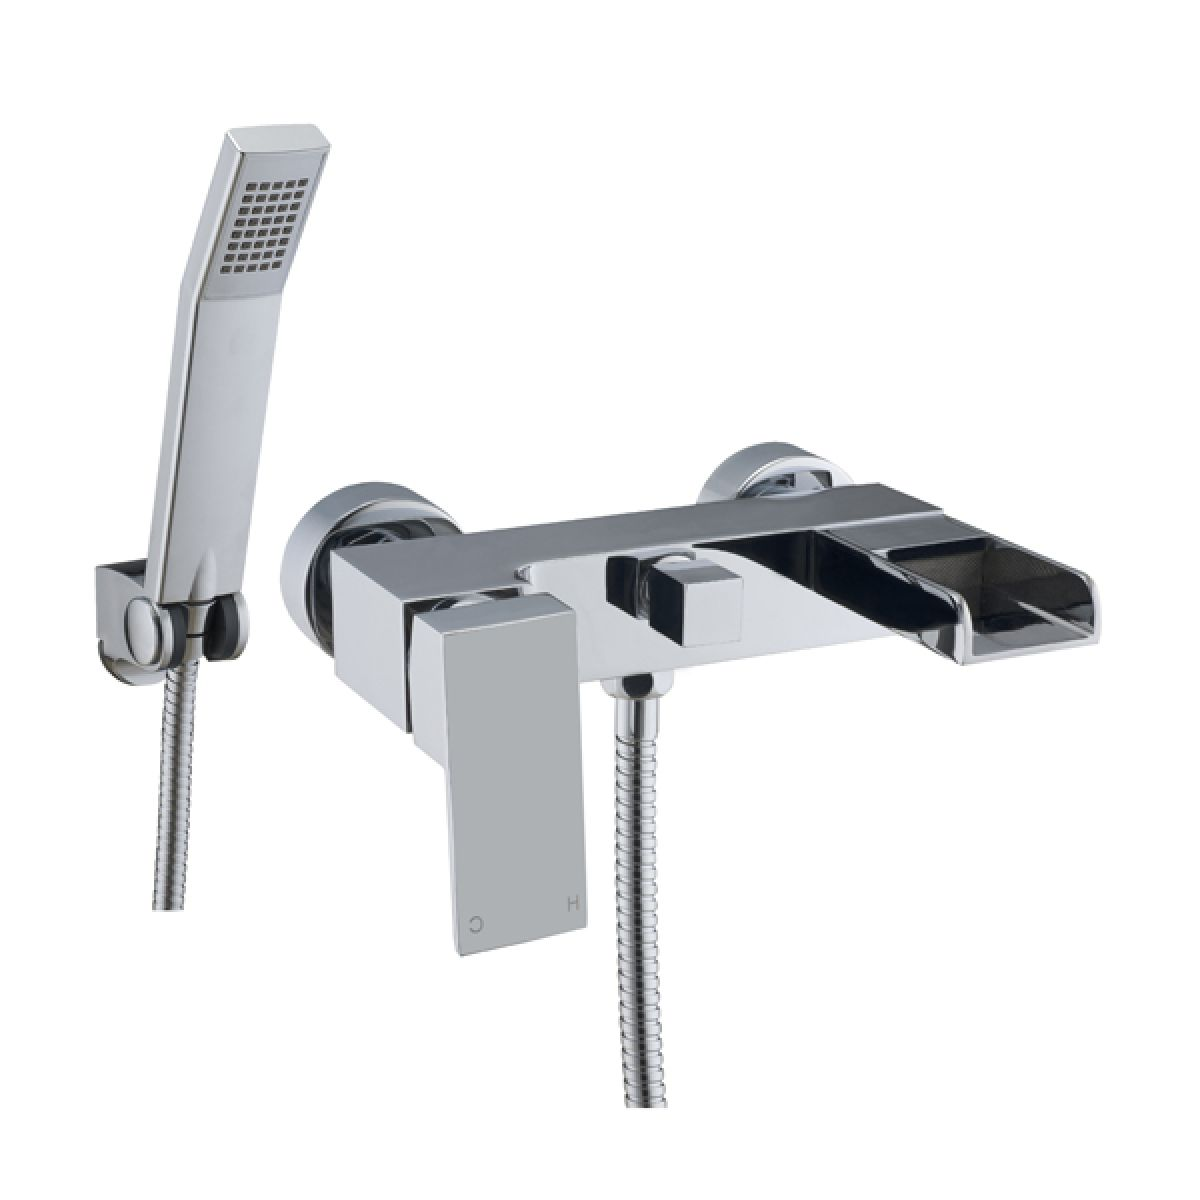 Frontline Stream Wall Mounted Bath Shower Mixer Tap